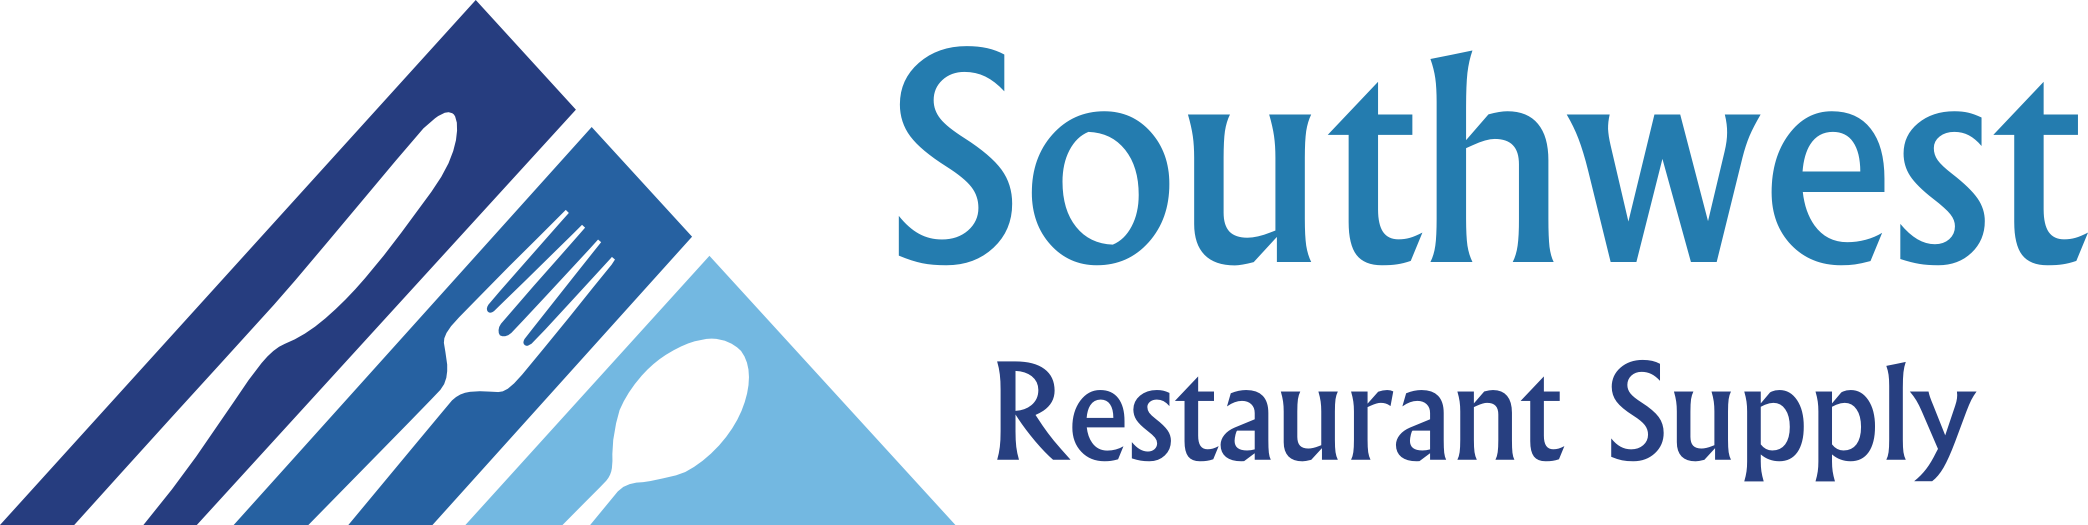 Restaurant Equipment | Southwest Restaurant Supply